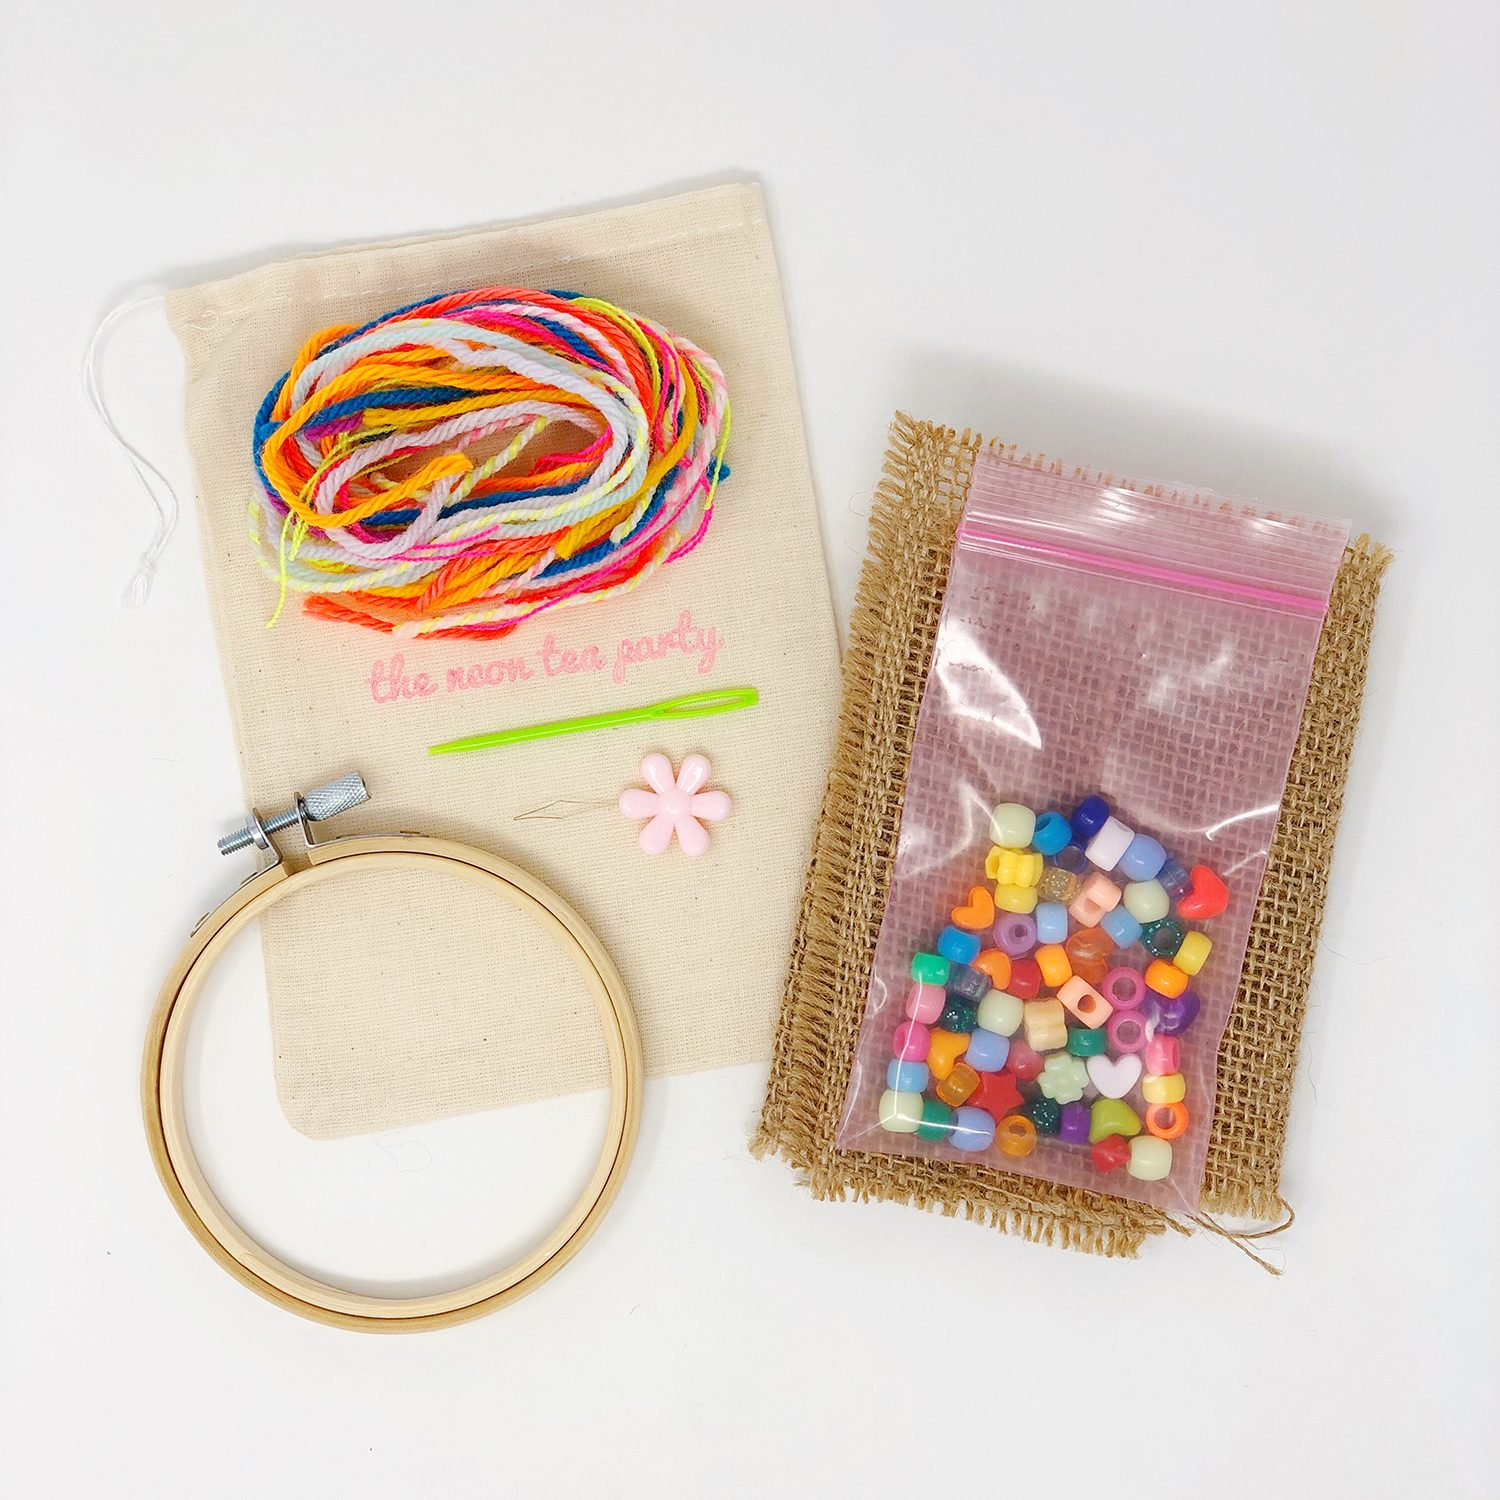 The Neon Tea Party - Process Embroidery Kit 1